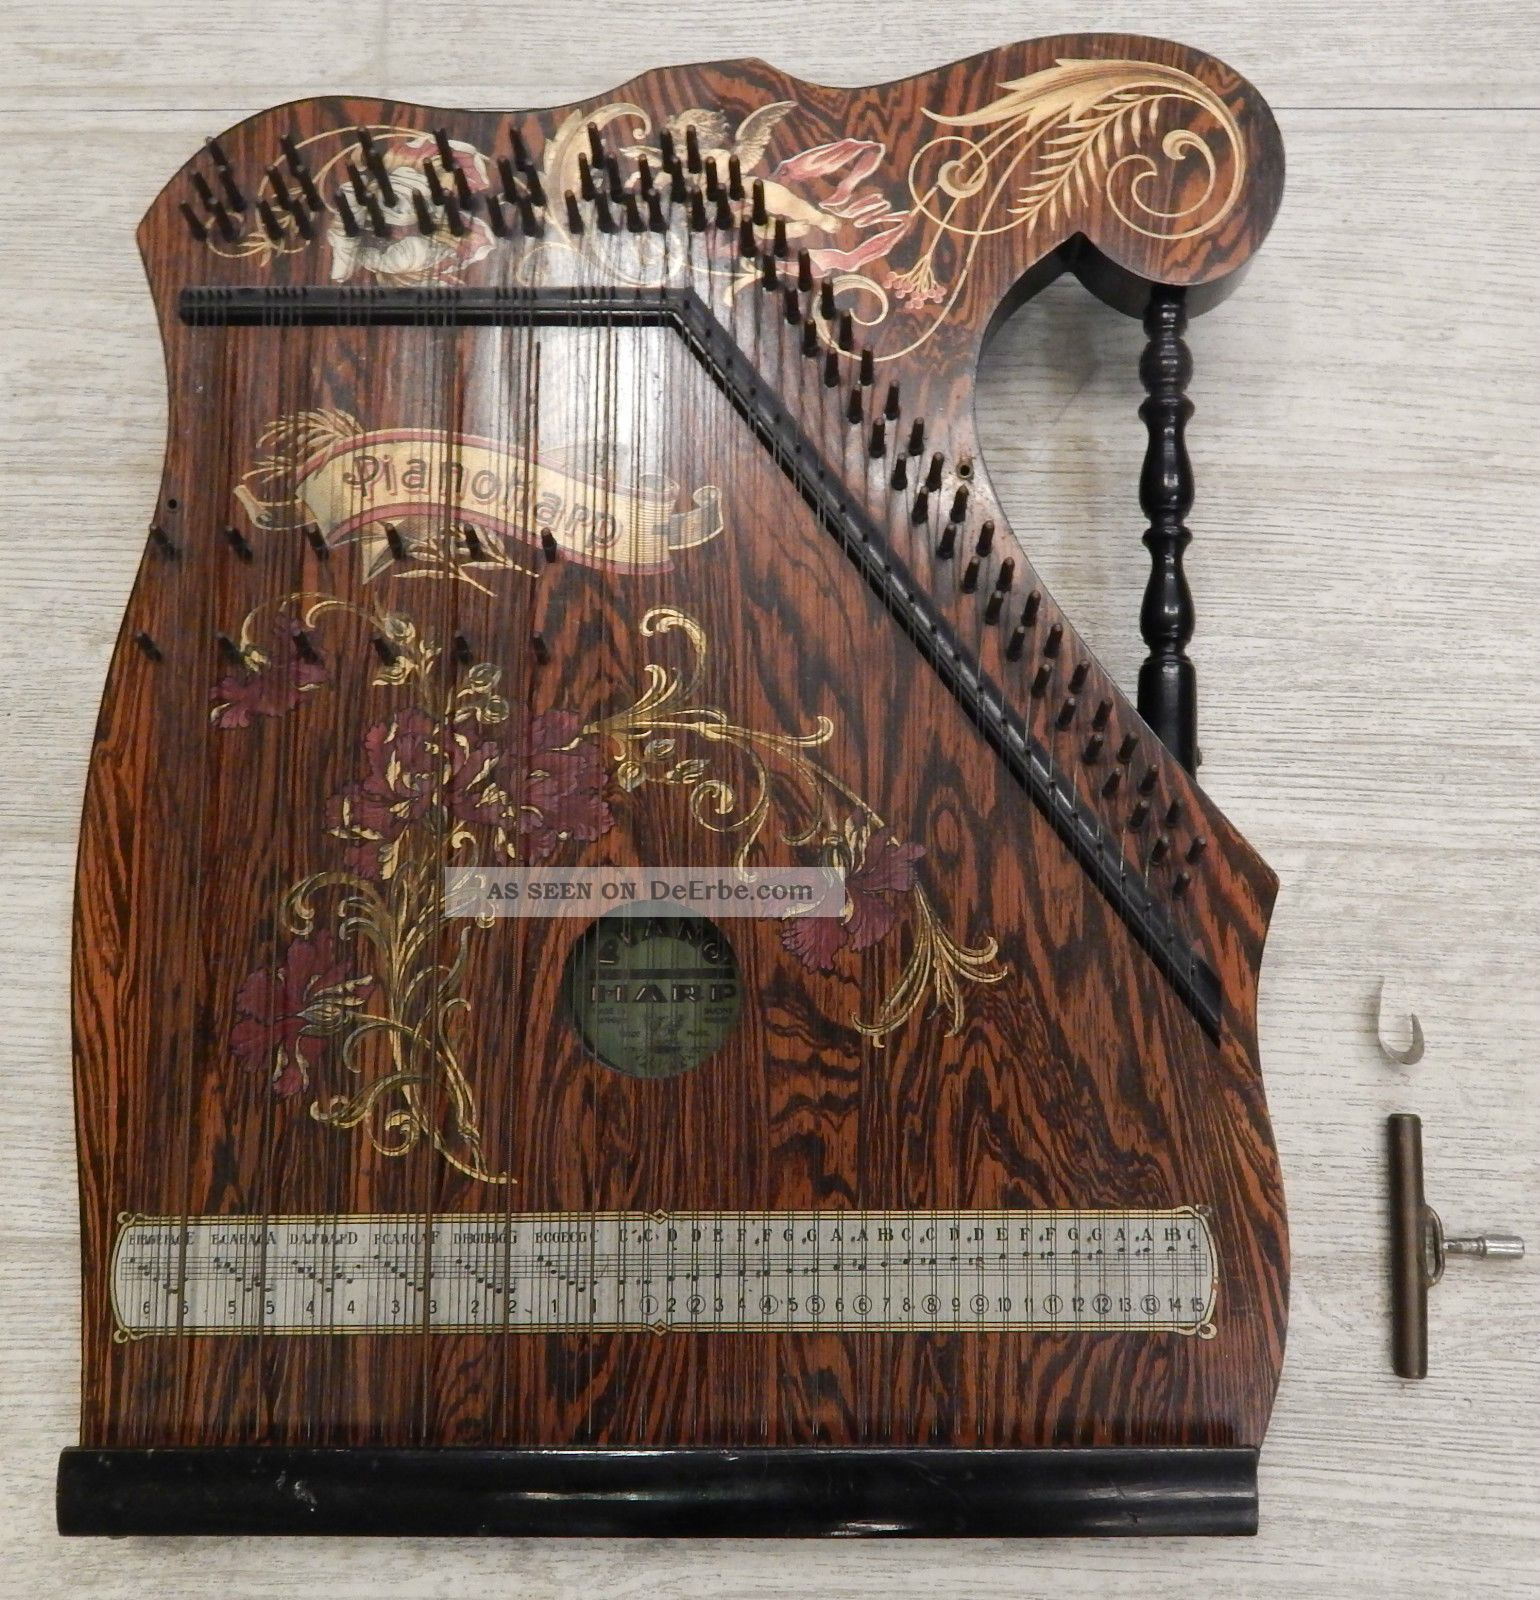 alte zither pianoharp made in germany trade 39 mark holz instument mit schl ssel. Black Bedroom Furniture Sets. Home Design Ideas